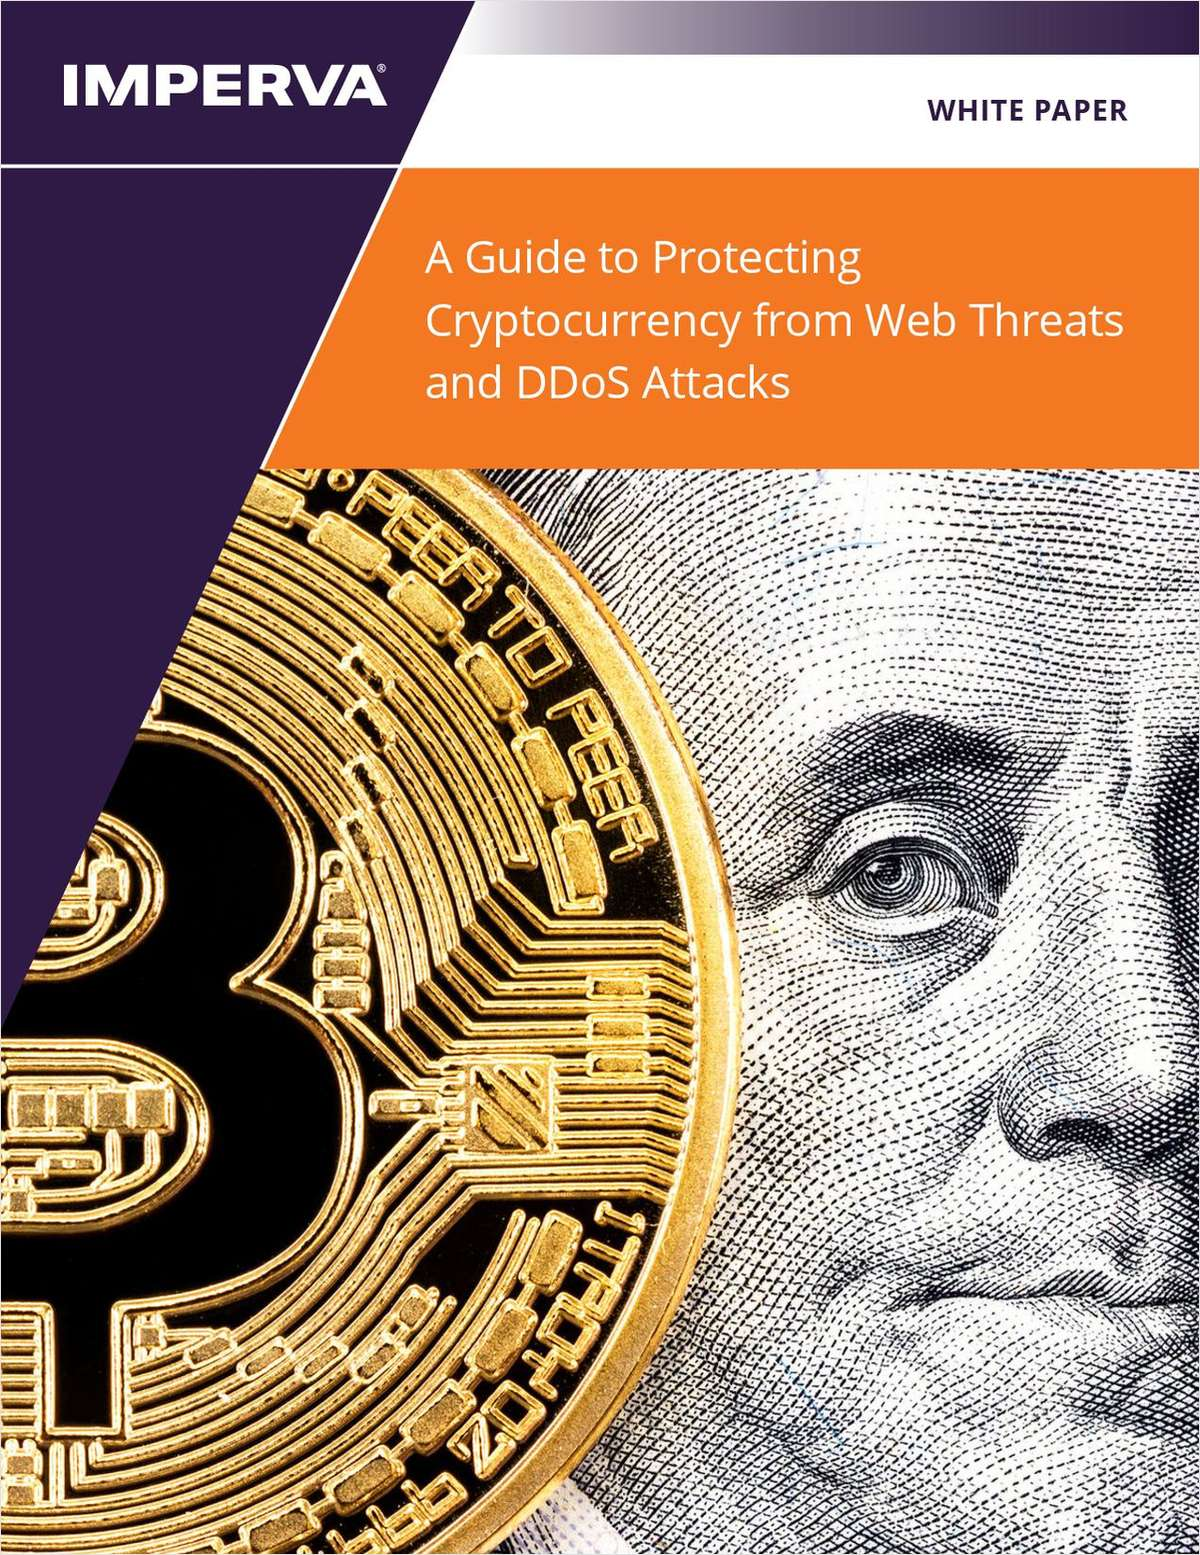 A Guide to Protecting Cryptocurrency from Web Threats and DDoS Attacks